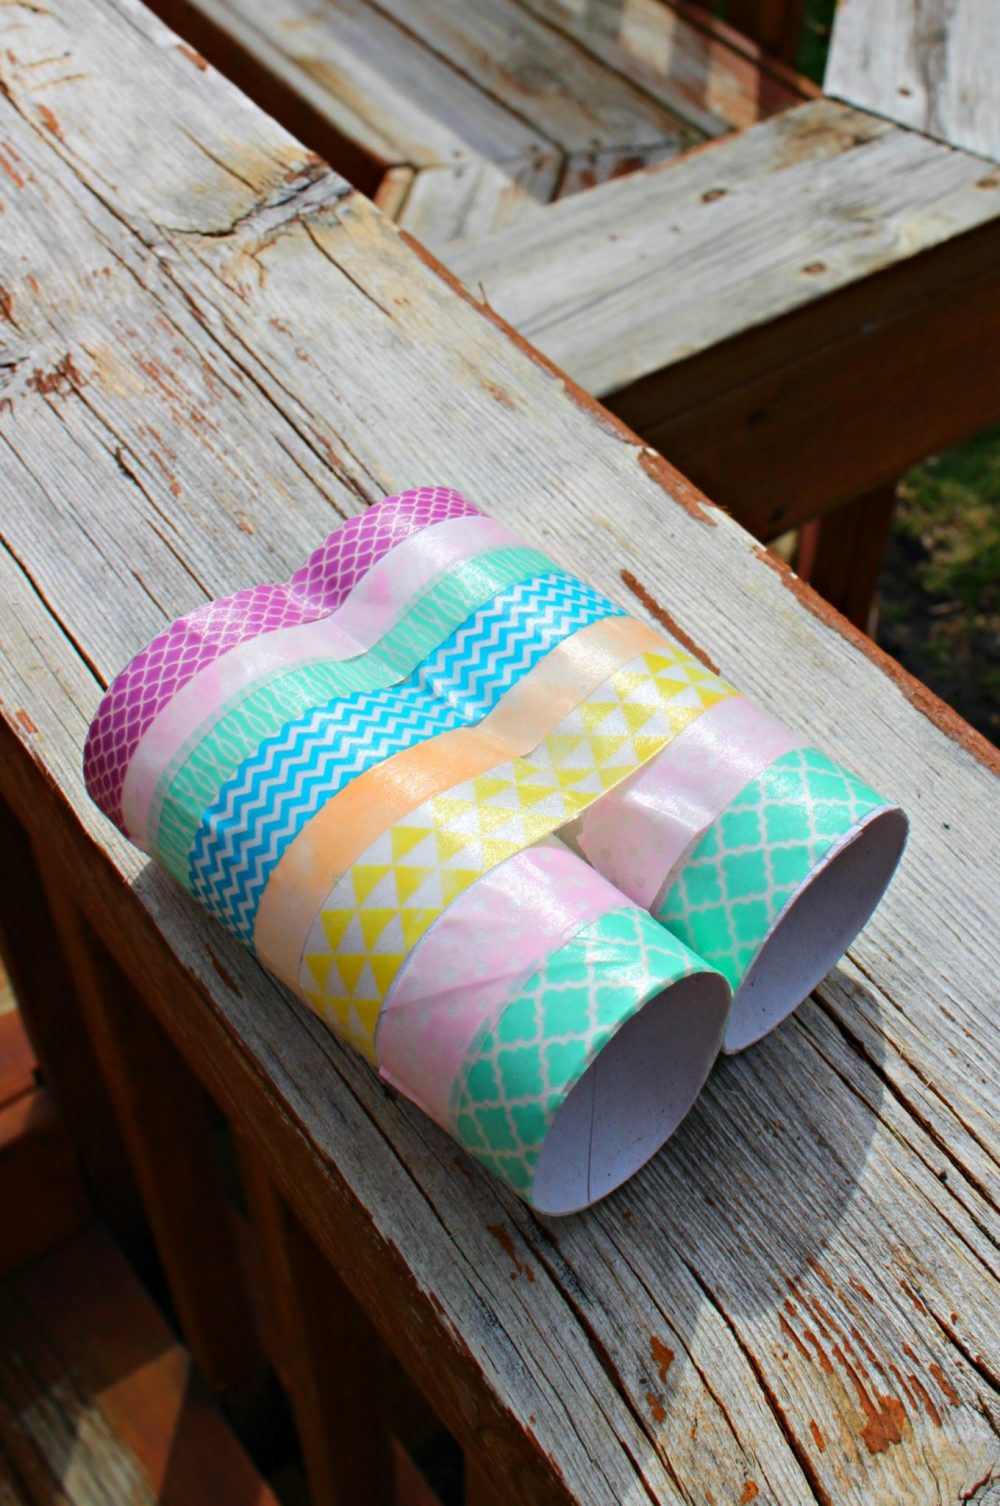 Binocular craft for kids made with toilet paper rolls and washi tape